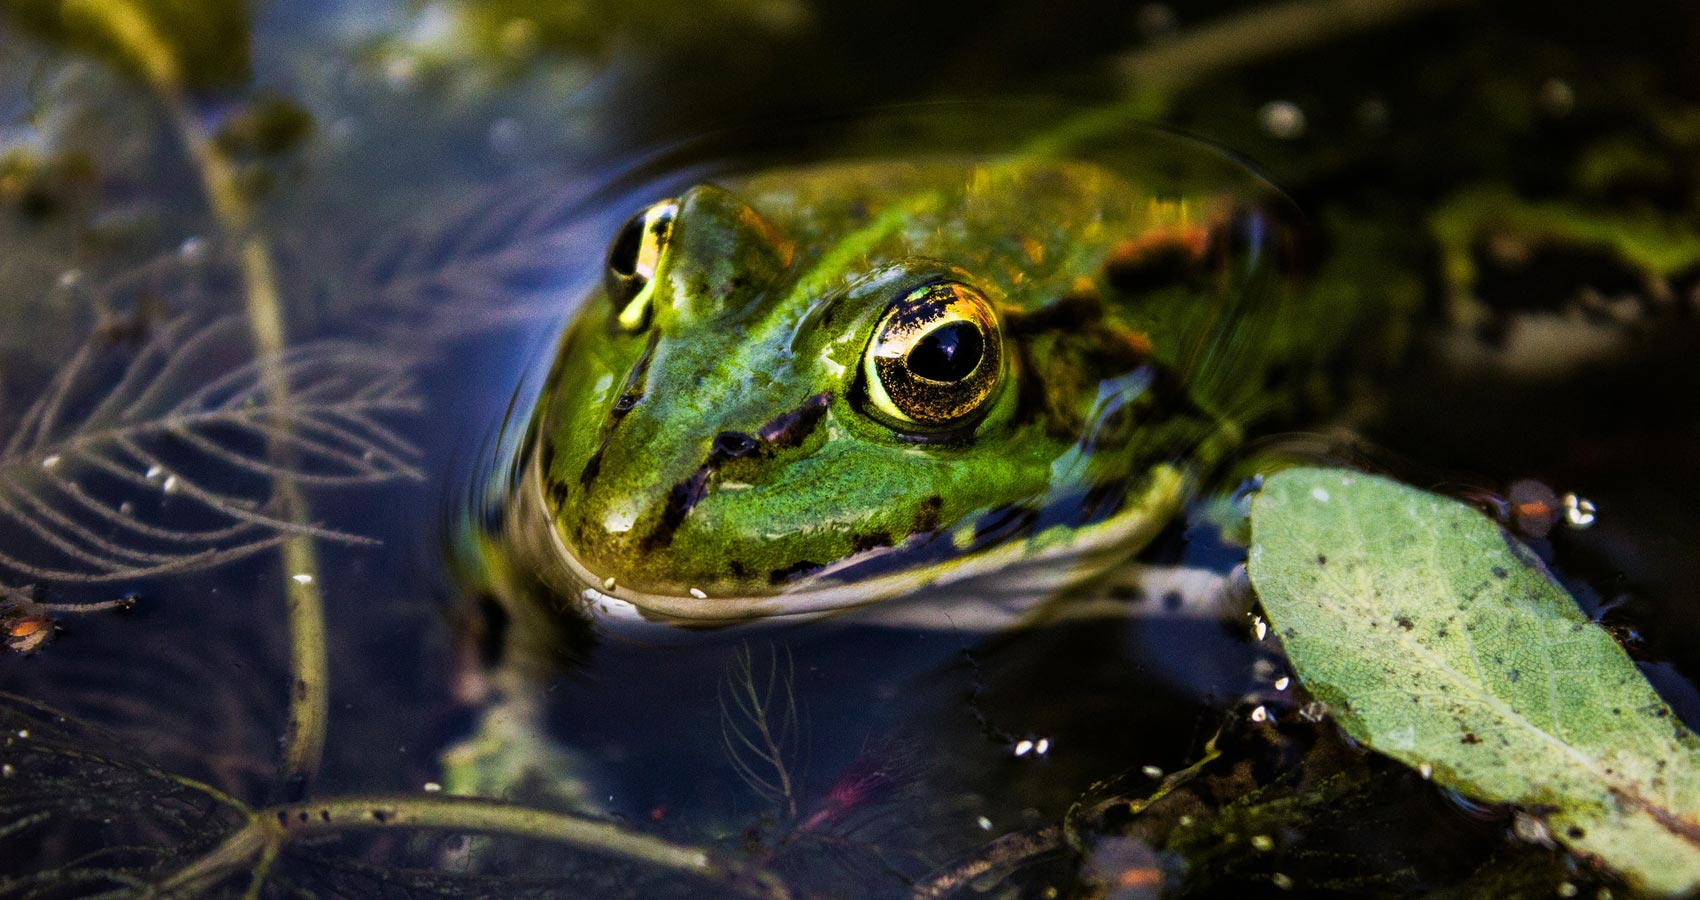 The Frog, a poem by Christina Rossetti at Spillwords.com